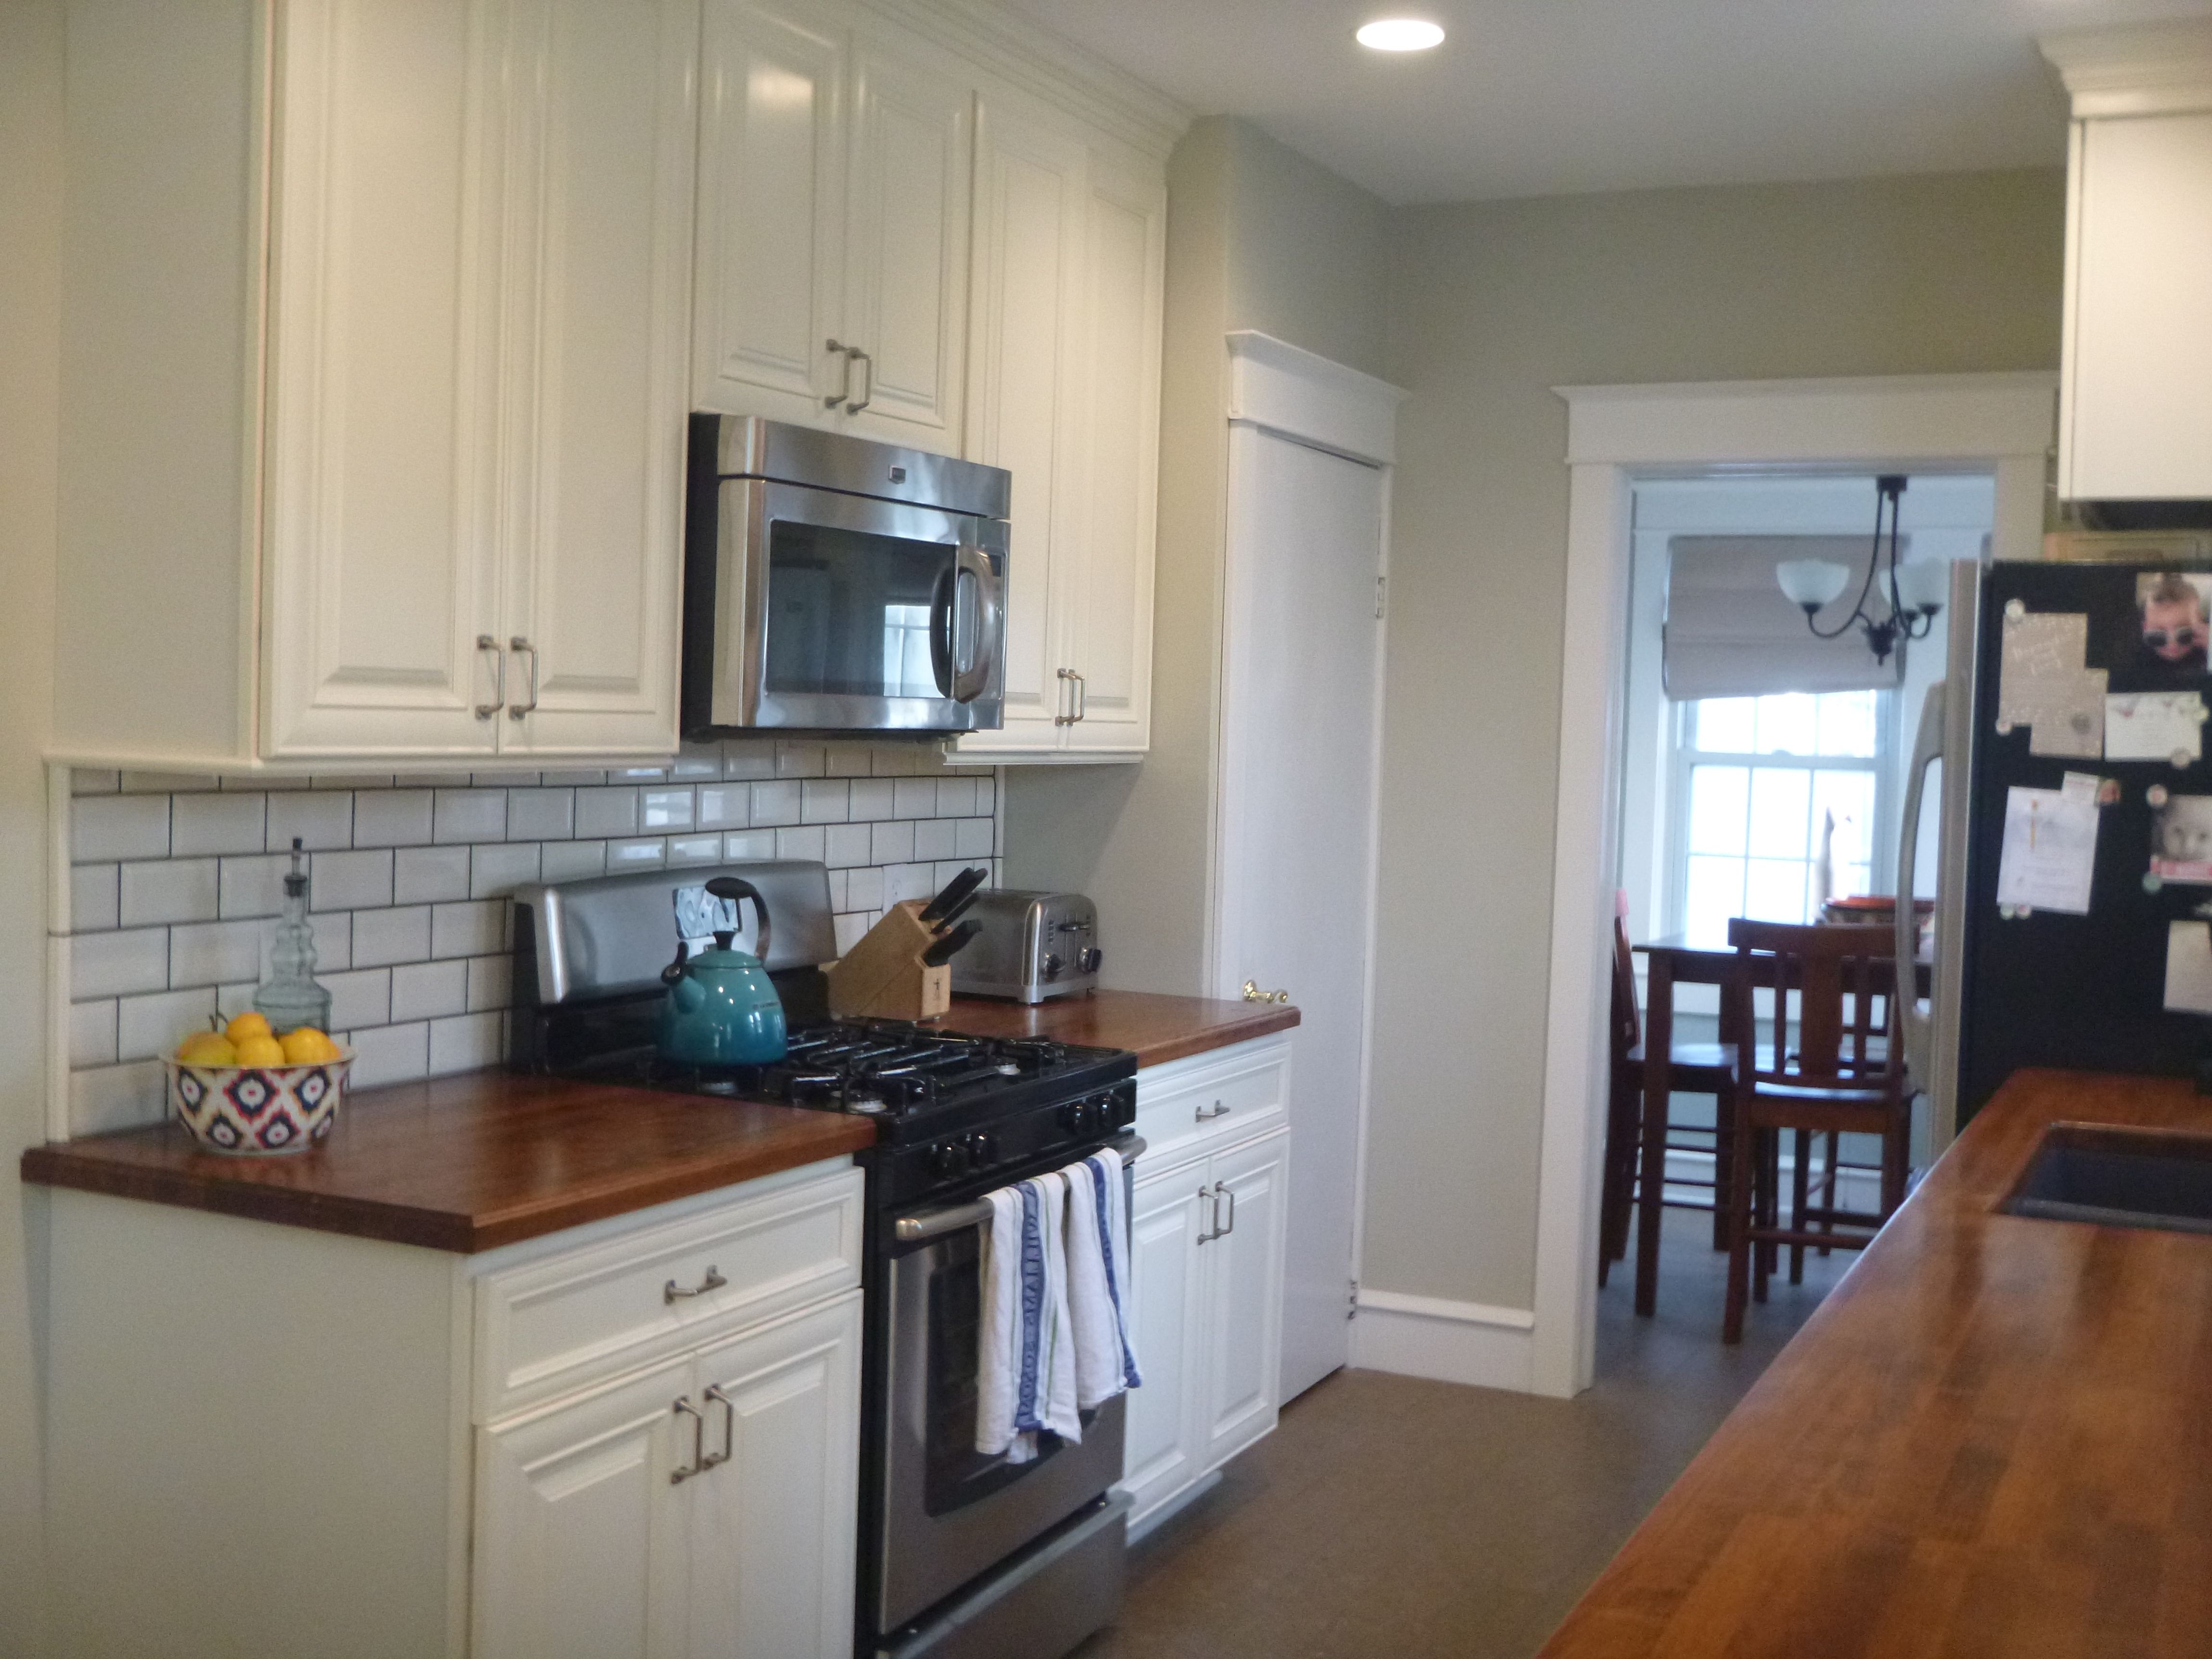 behr ocean pearl great paint color Love the counters